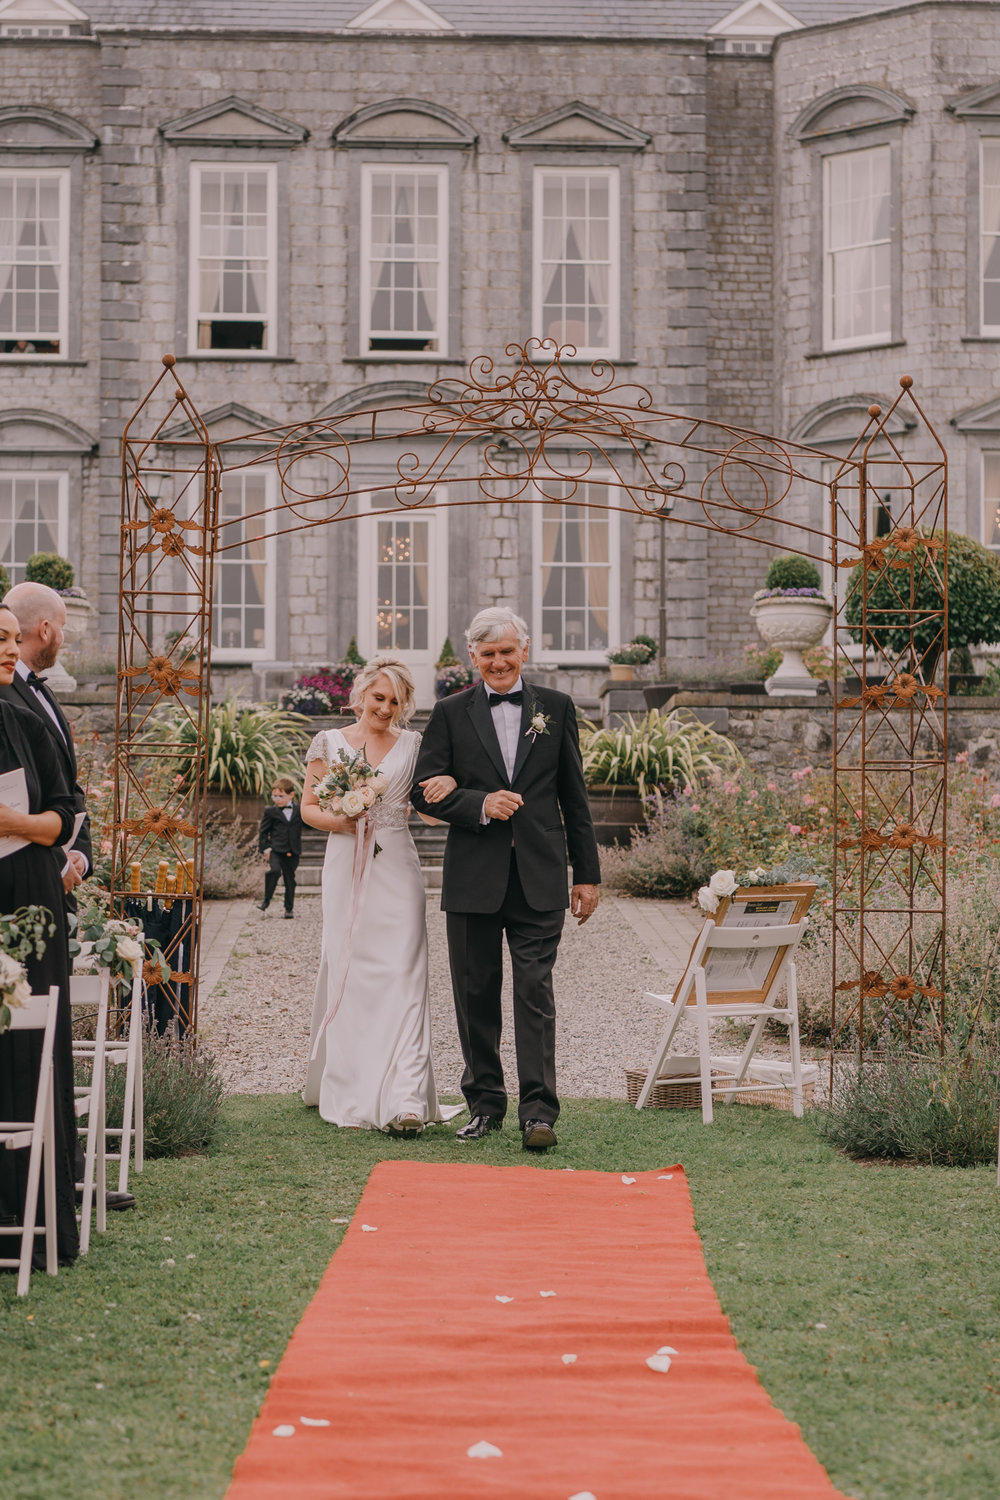 destination-wedding-photographers-castle-durrow-ireland099.jpg